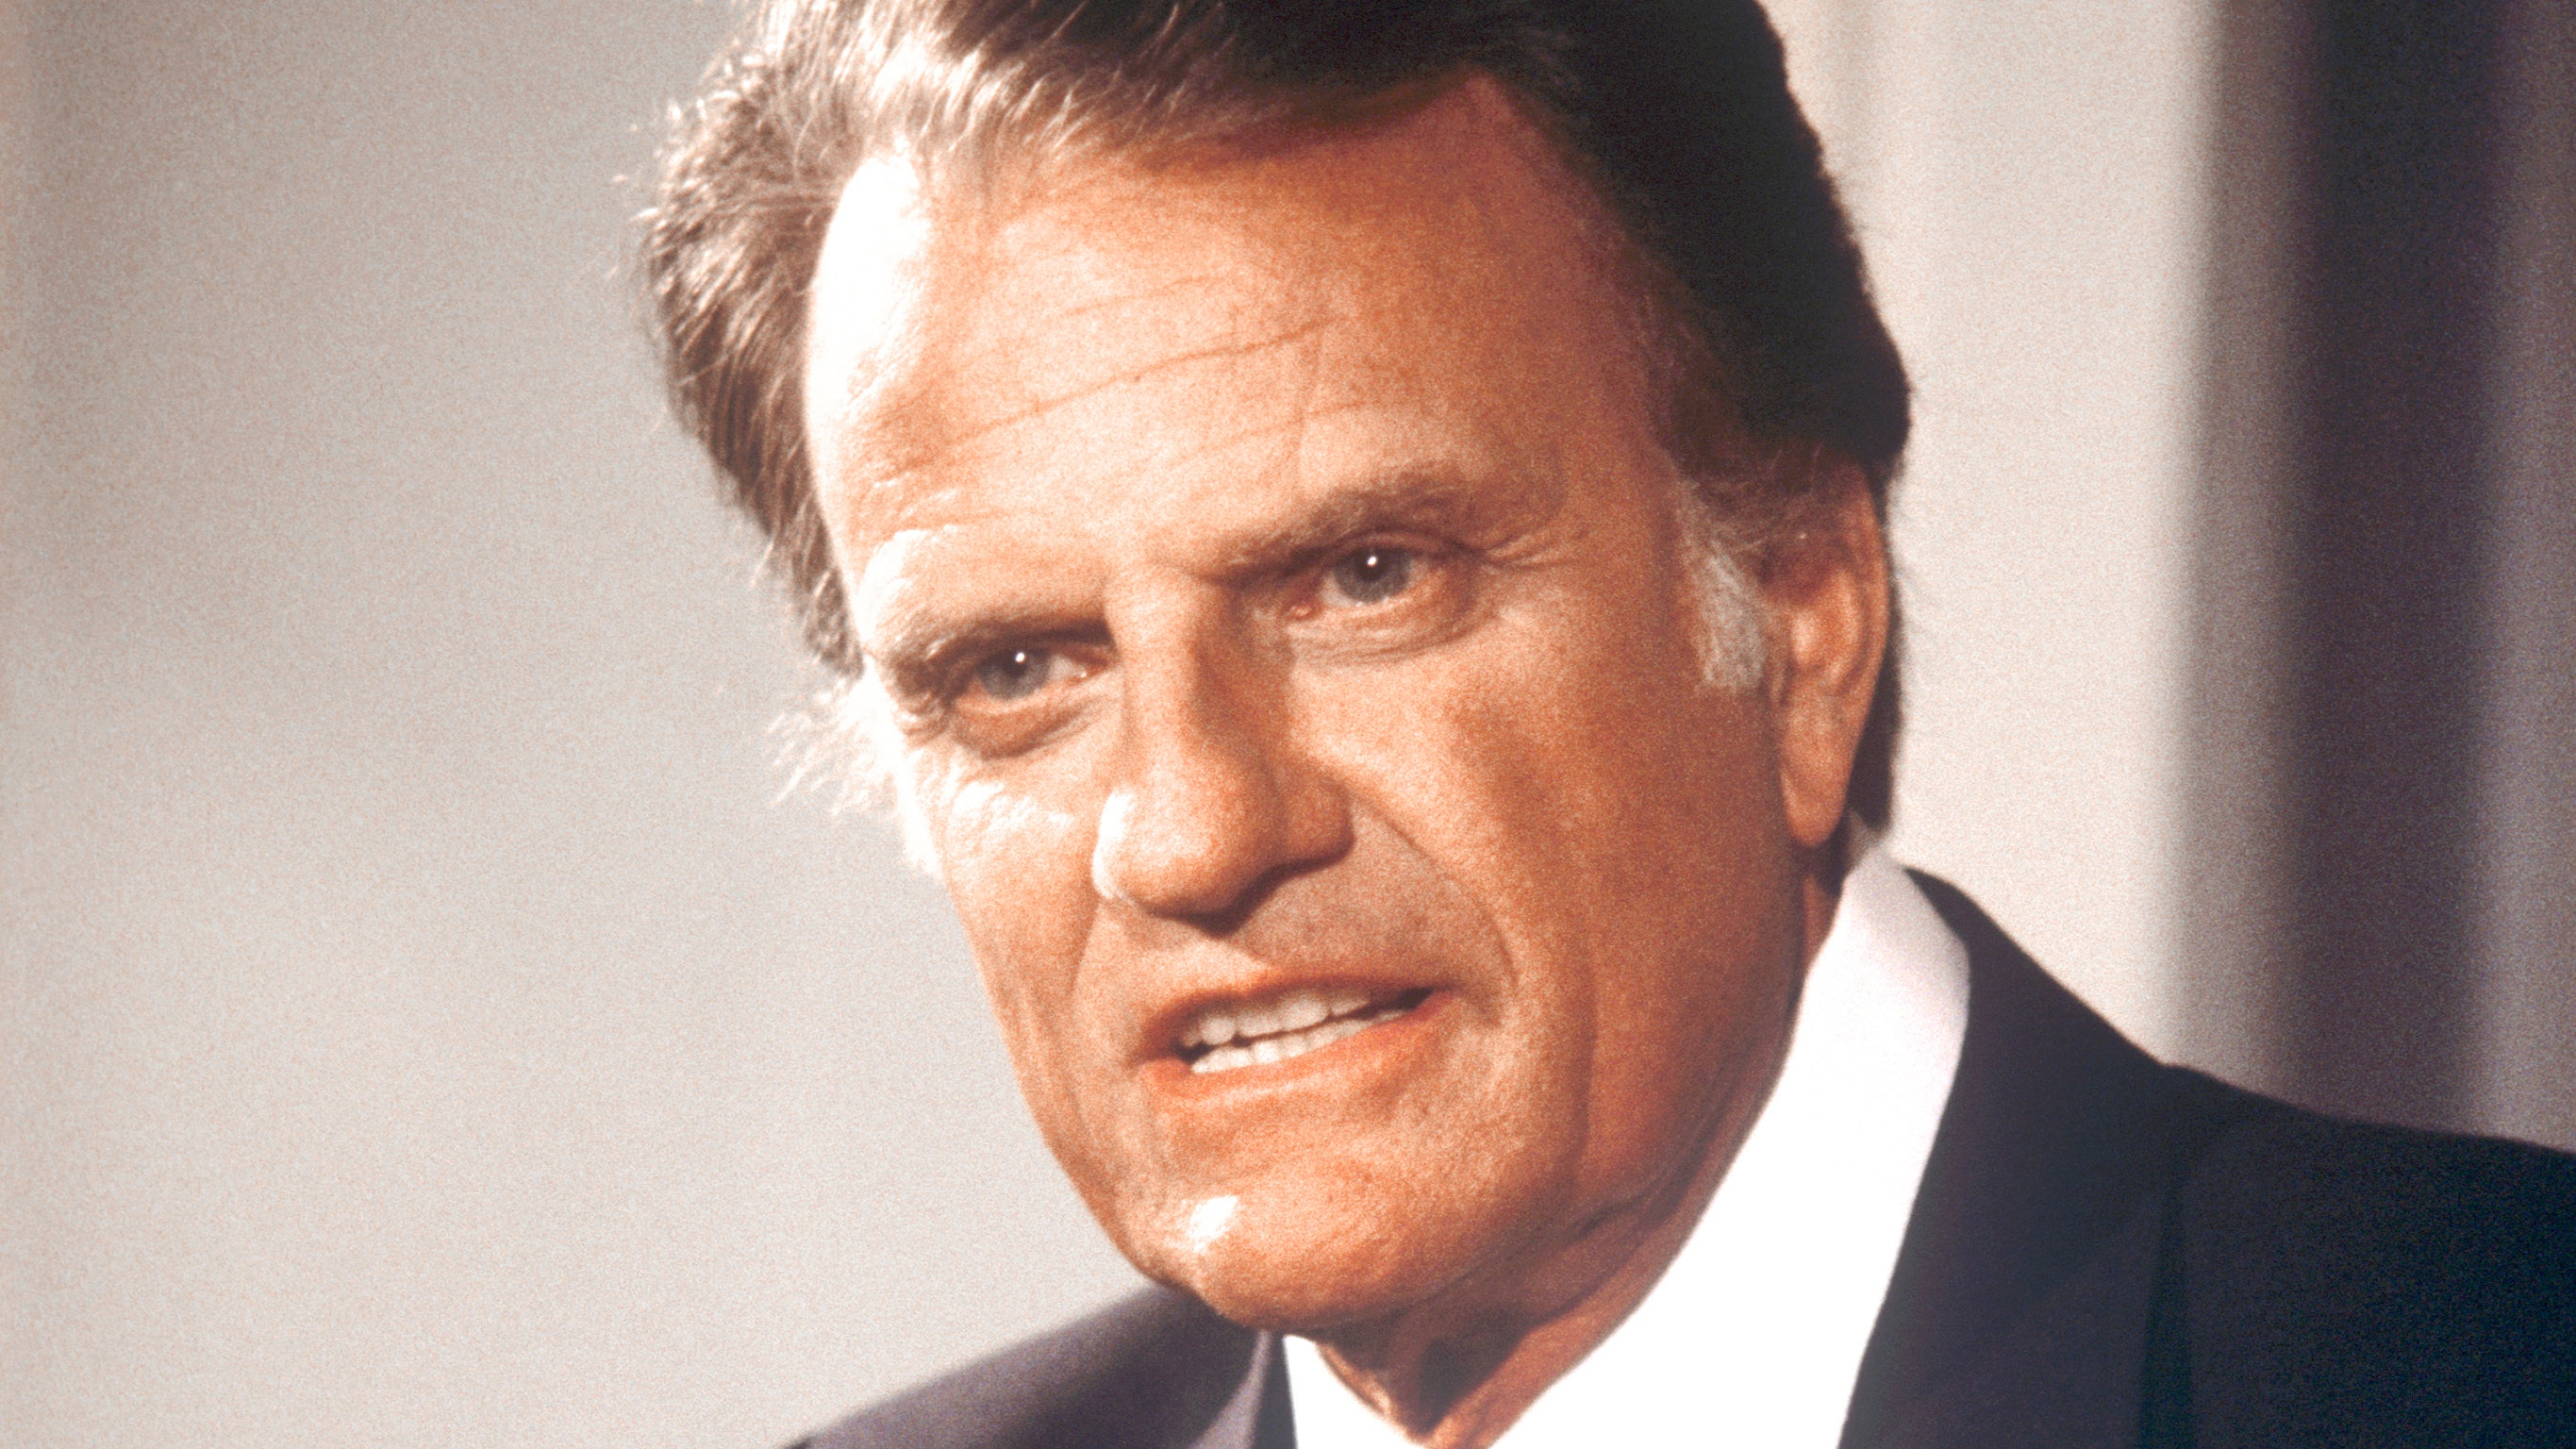 Reactions to the death of U.S. evangelist Billy Graham